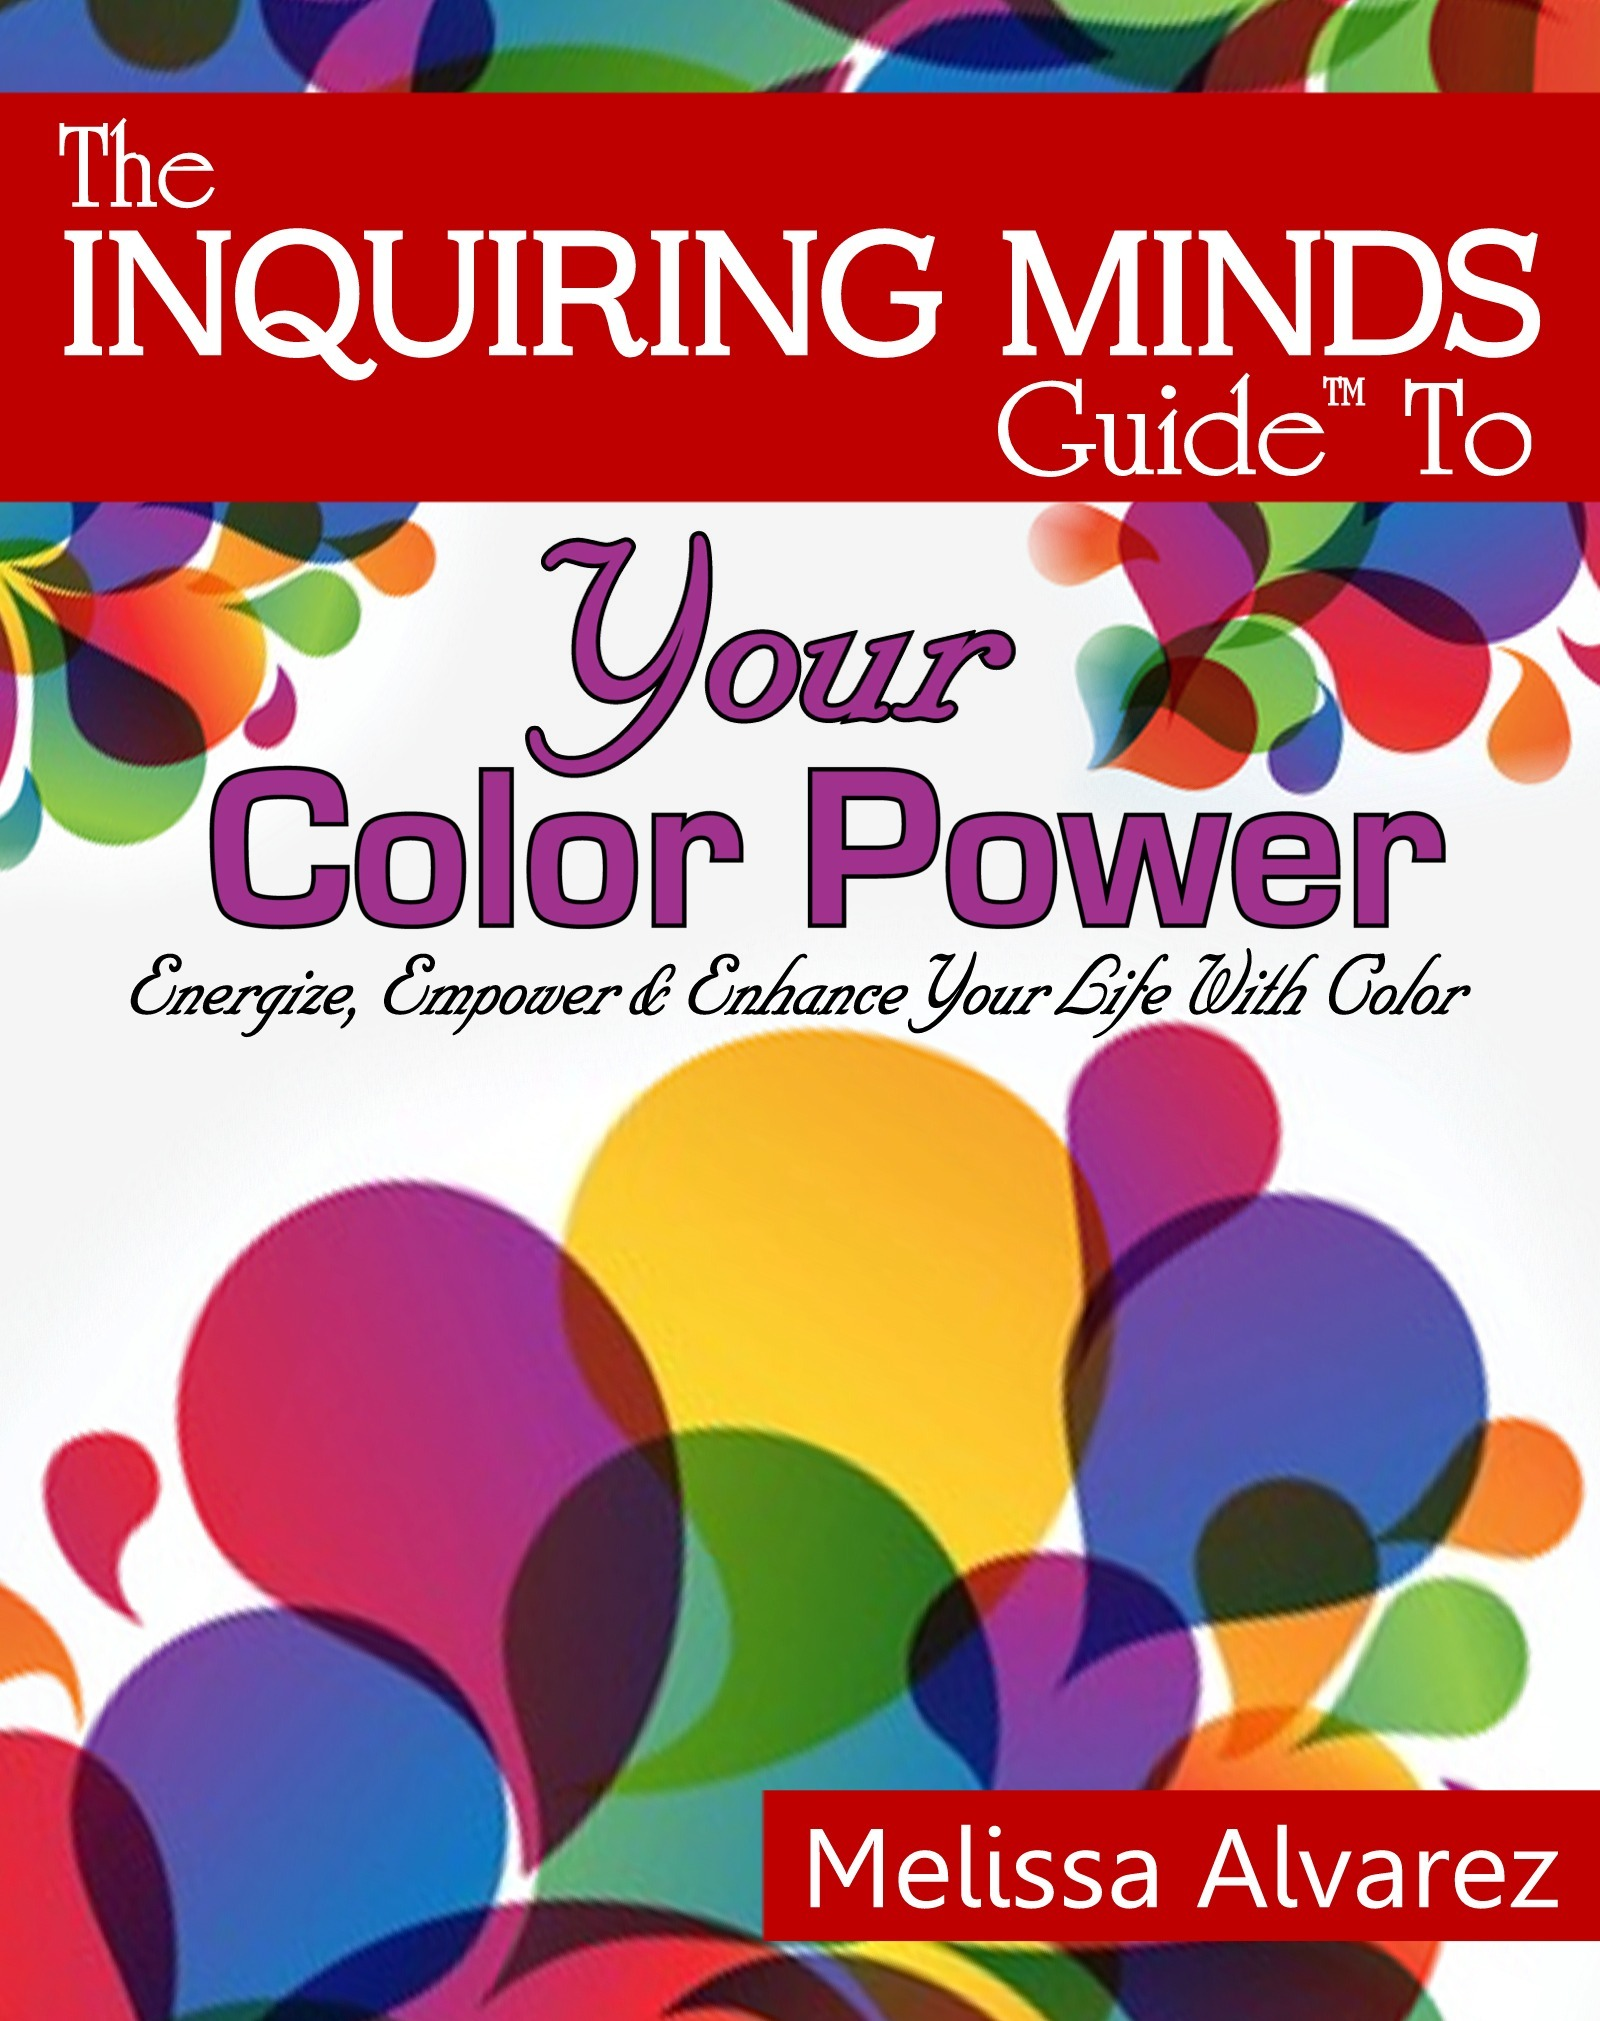 The Inquiring Minds Guide™ To Your Color Power: Energize, Empower & Enhance Your Life With Color